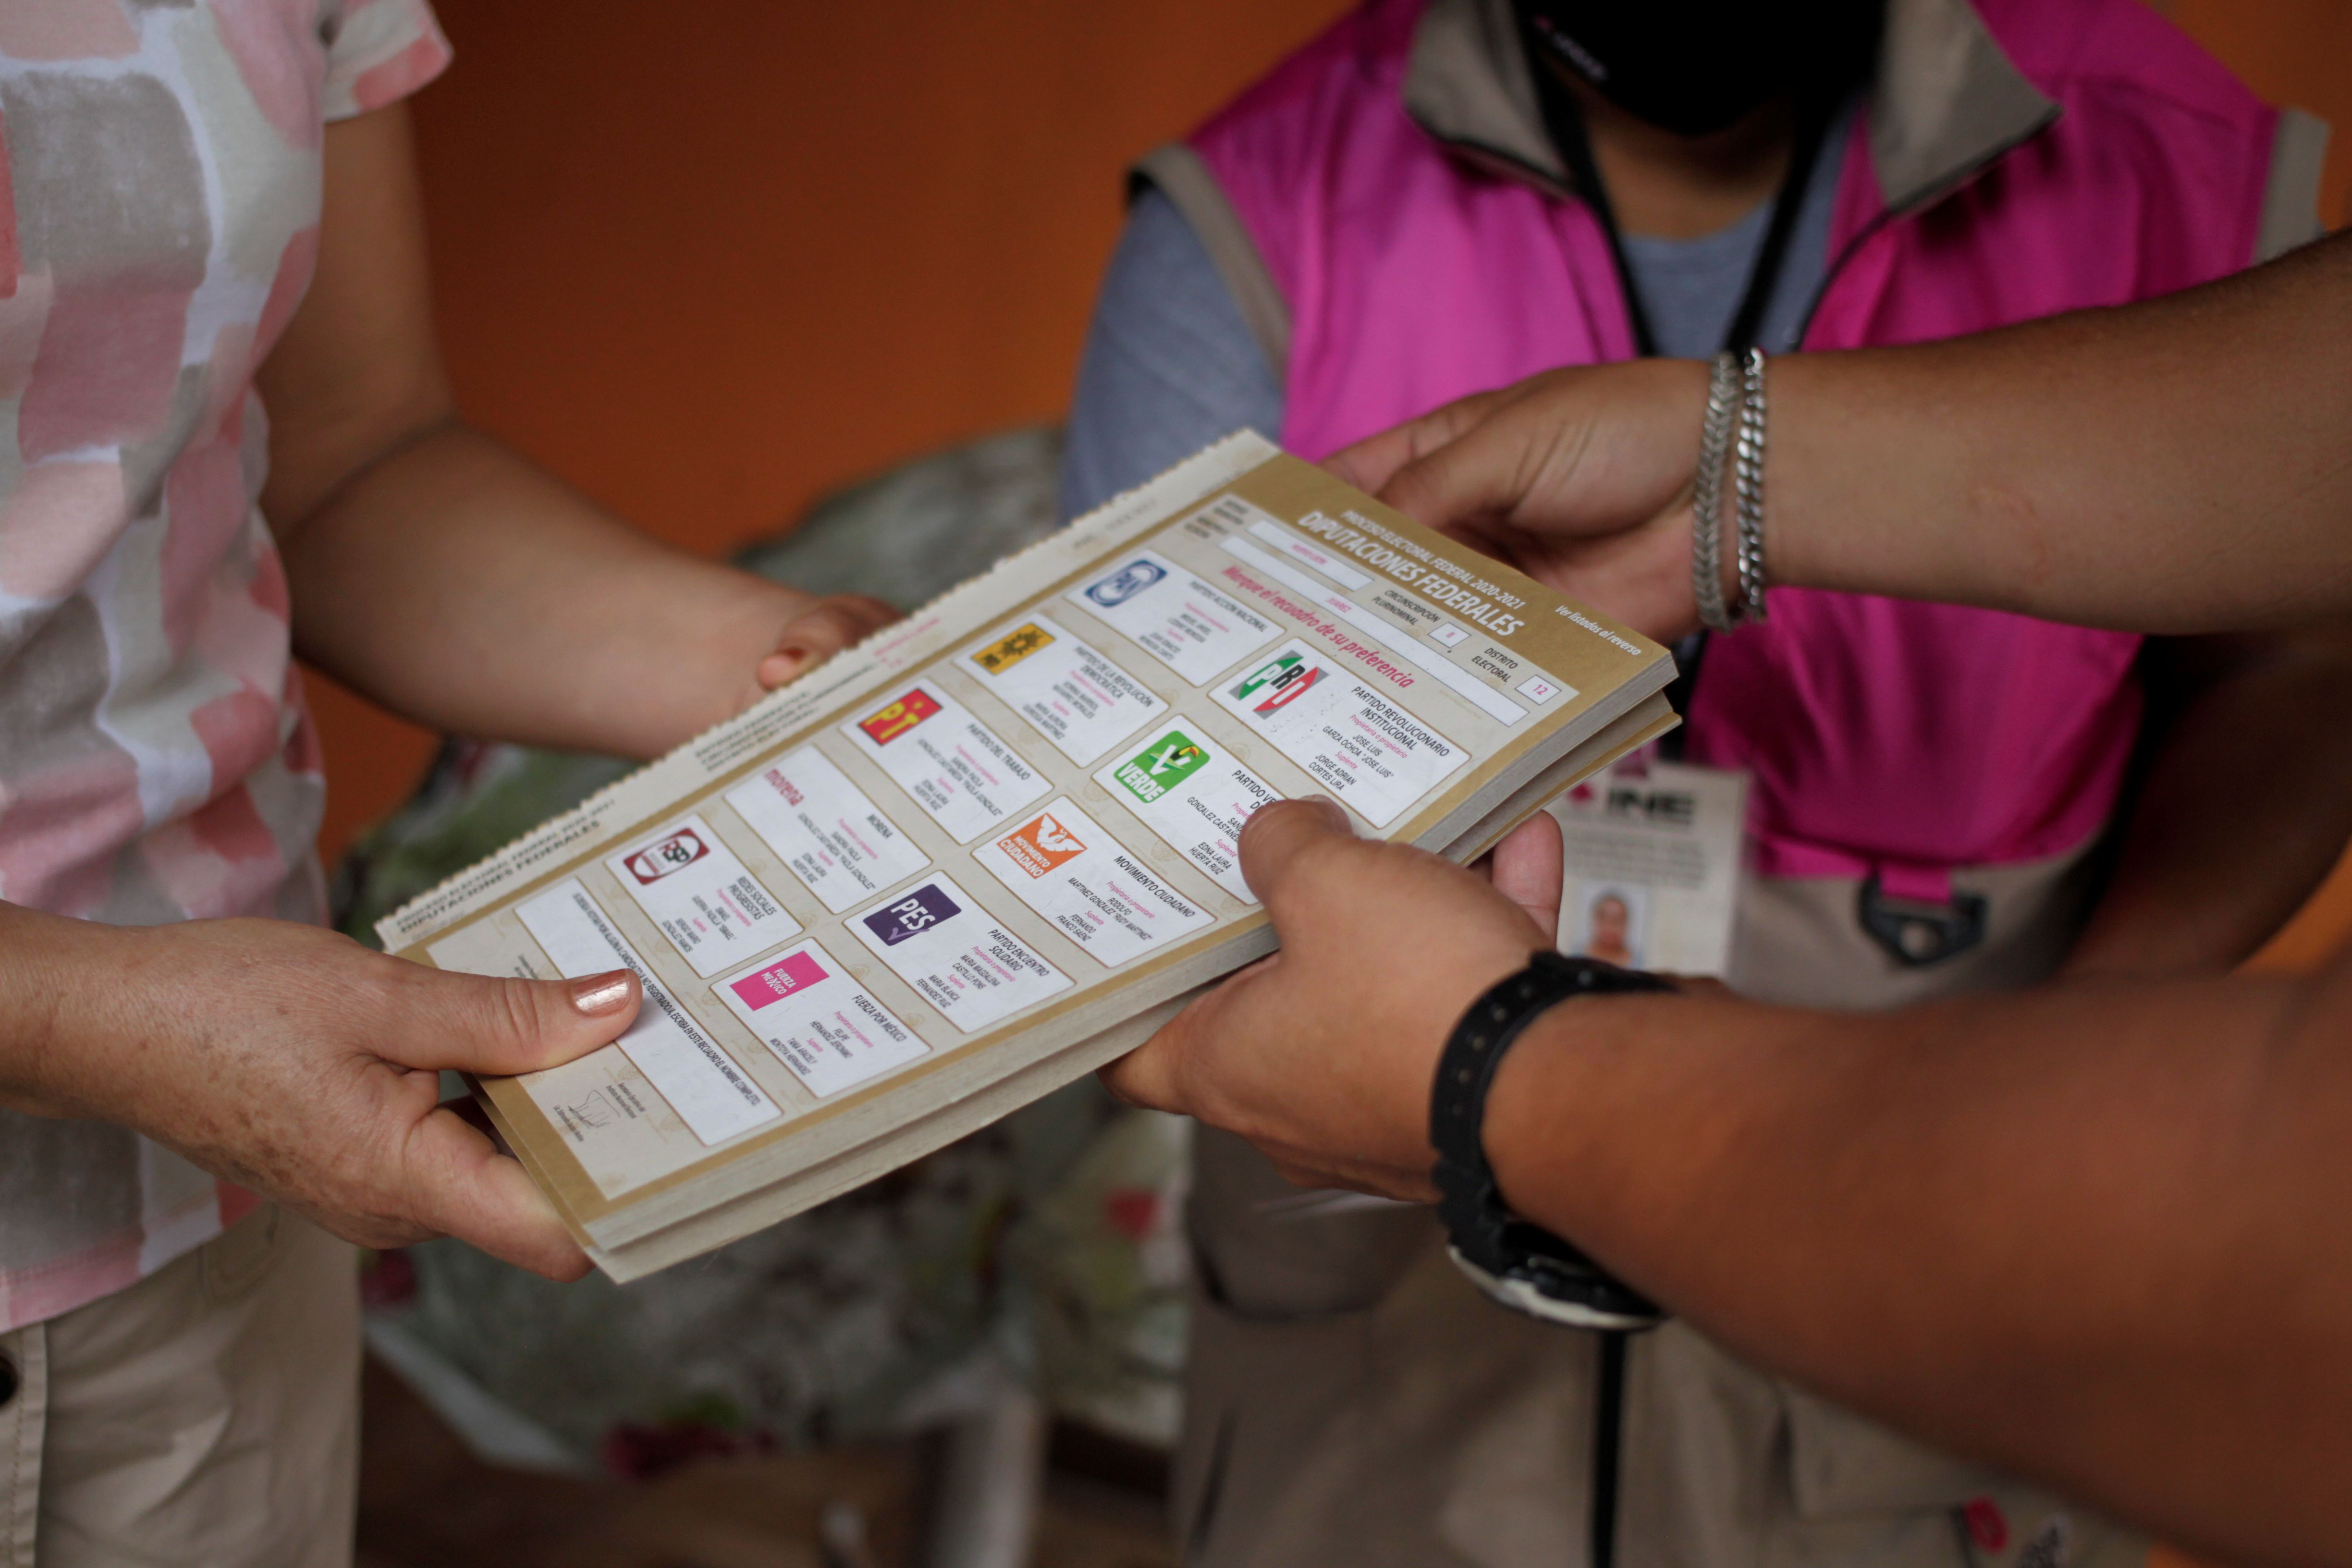 Leticia Gonzalez, selected as a polling station officer by the National Electoral Institute (INE) receives voting materials ahead of the mid-term elections on June 6, in Juarez, on the outskirts of Monterrey, Mexico June 3, 2021. REUTERS/Daniel Becerril